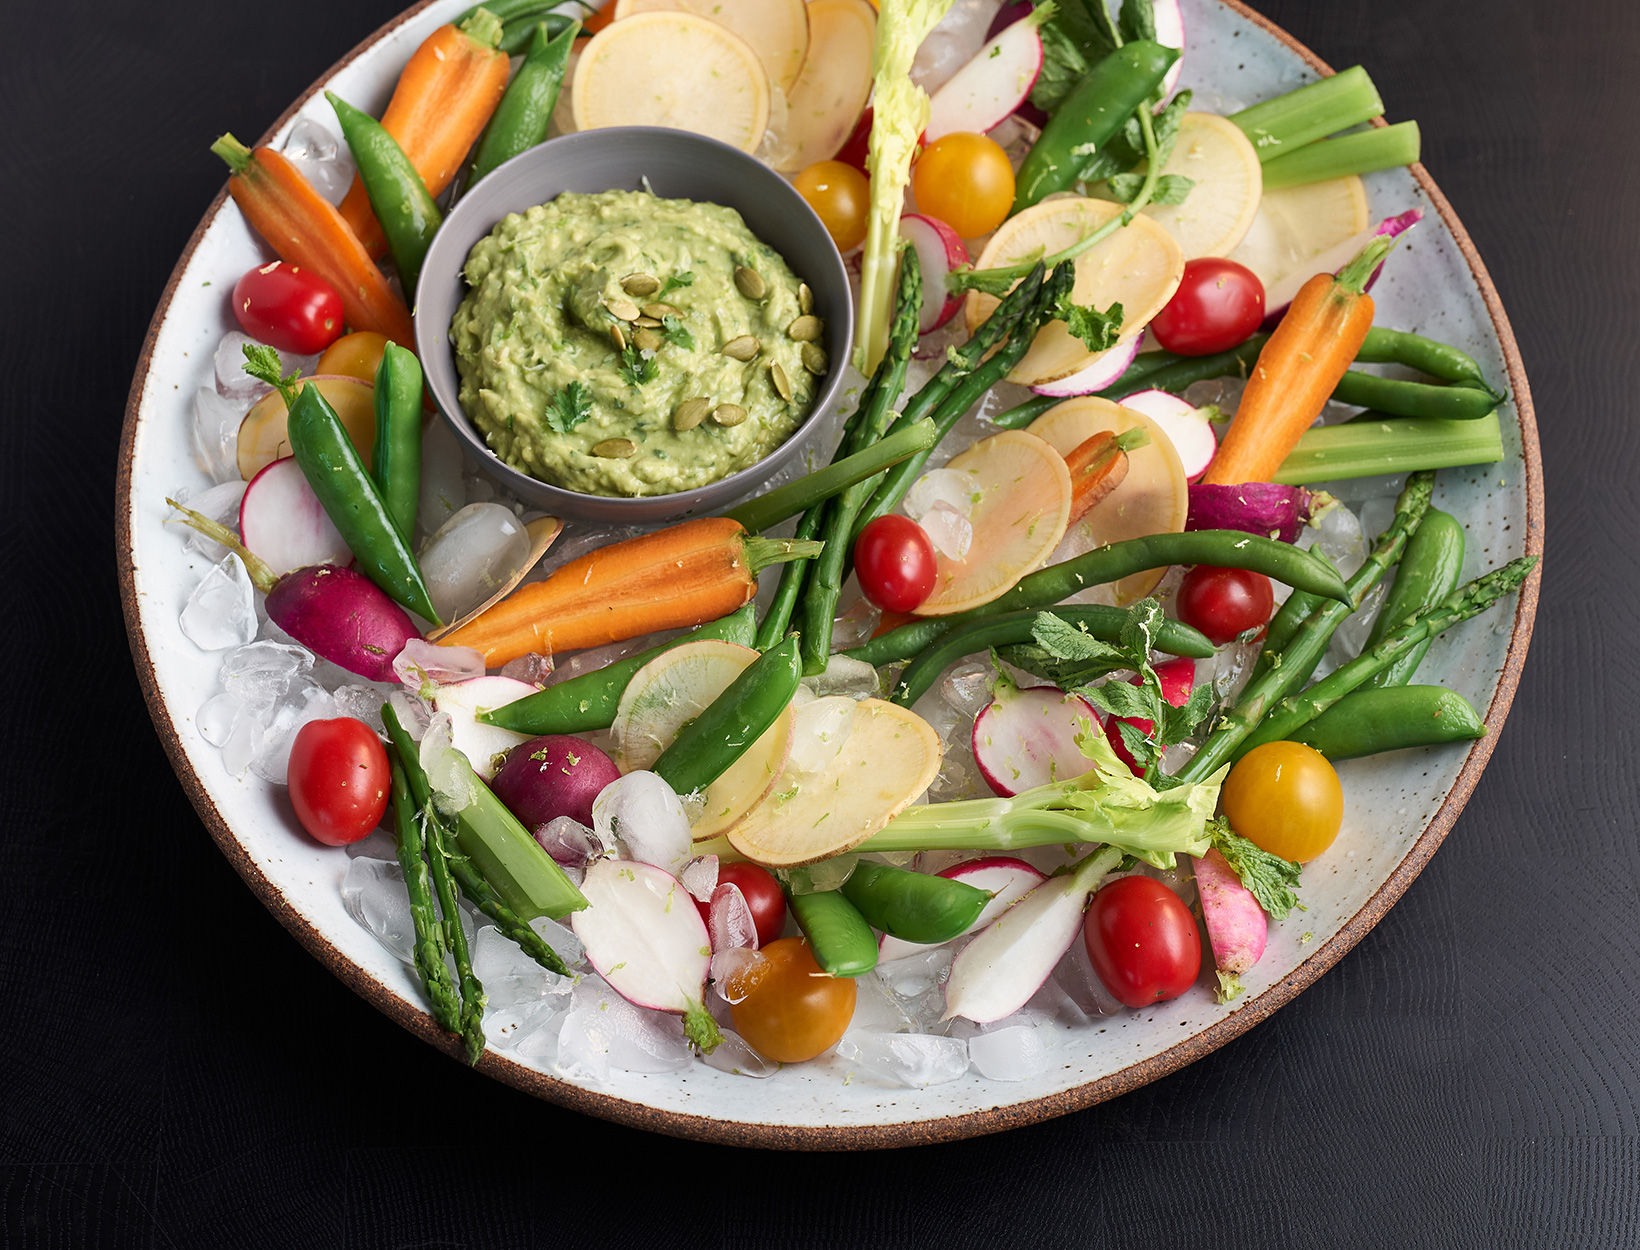 Summer Crudités with Avocado Dip